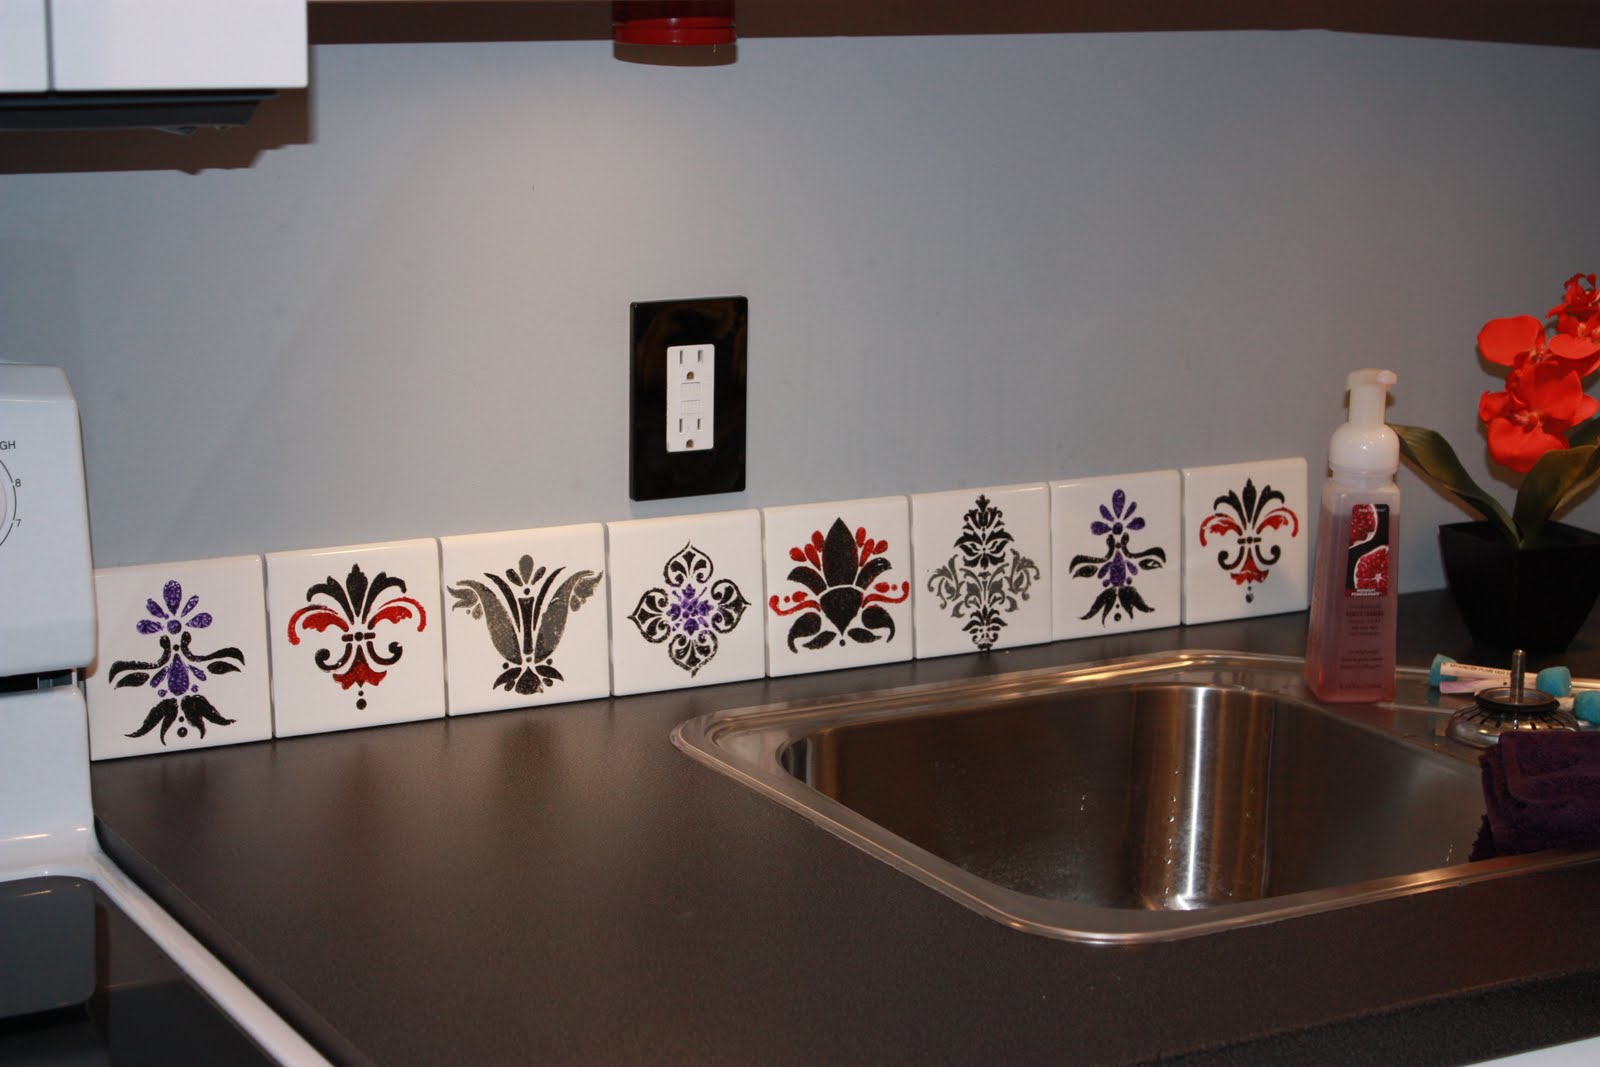 The Black Spot Kitchen Remodel Update 4 New Photo Of Sink